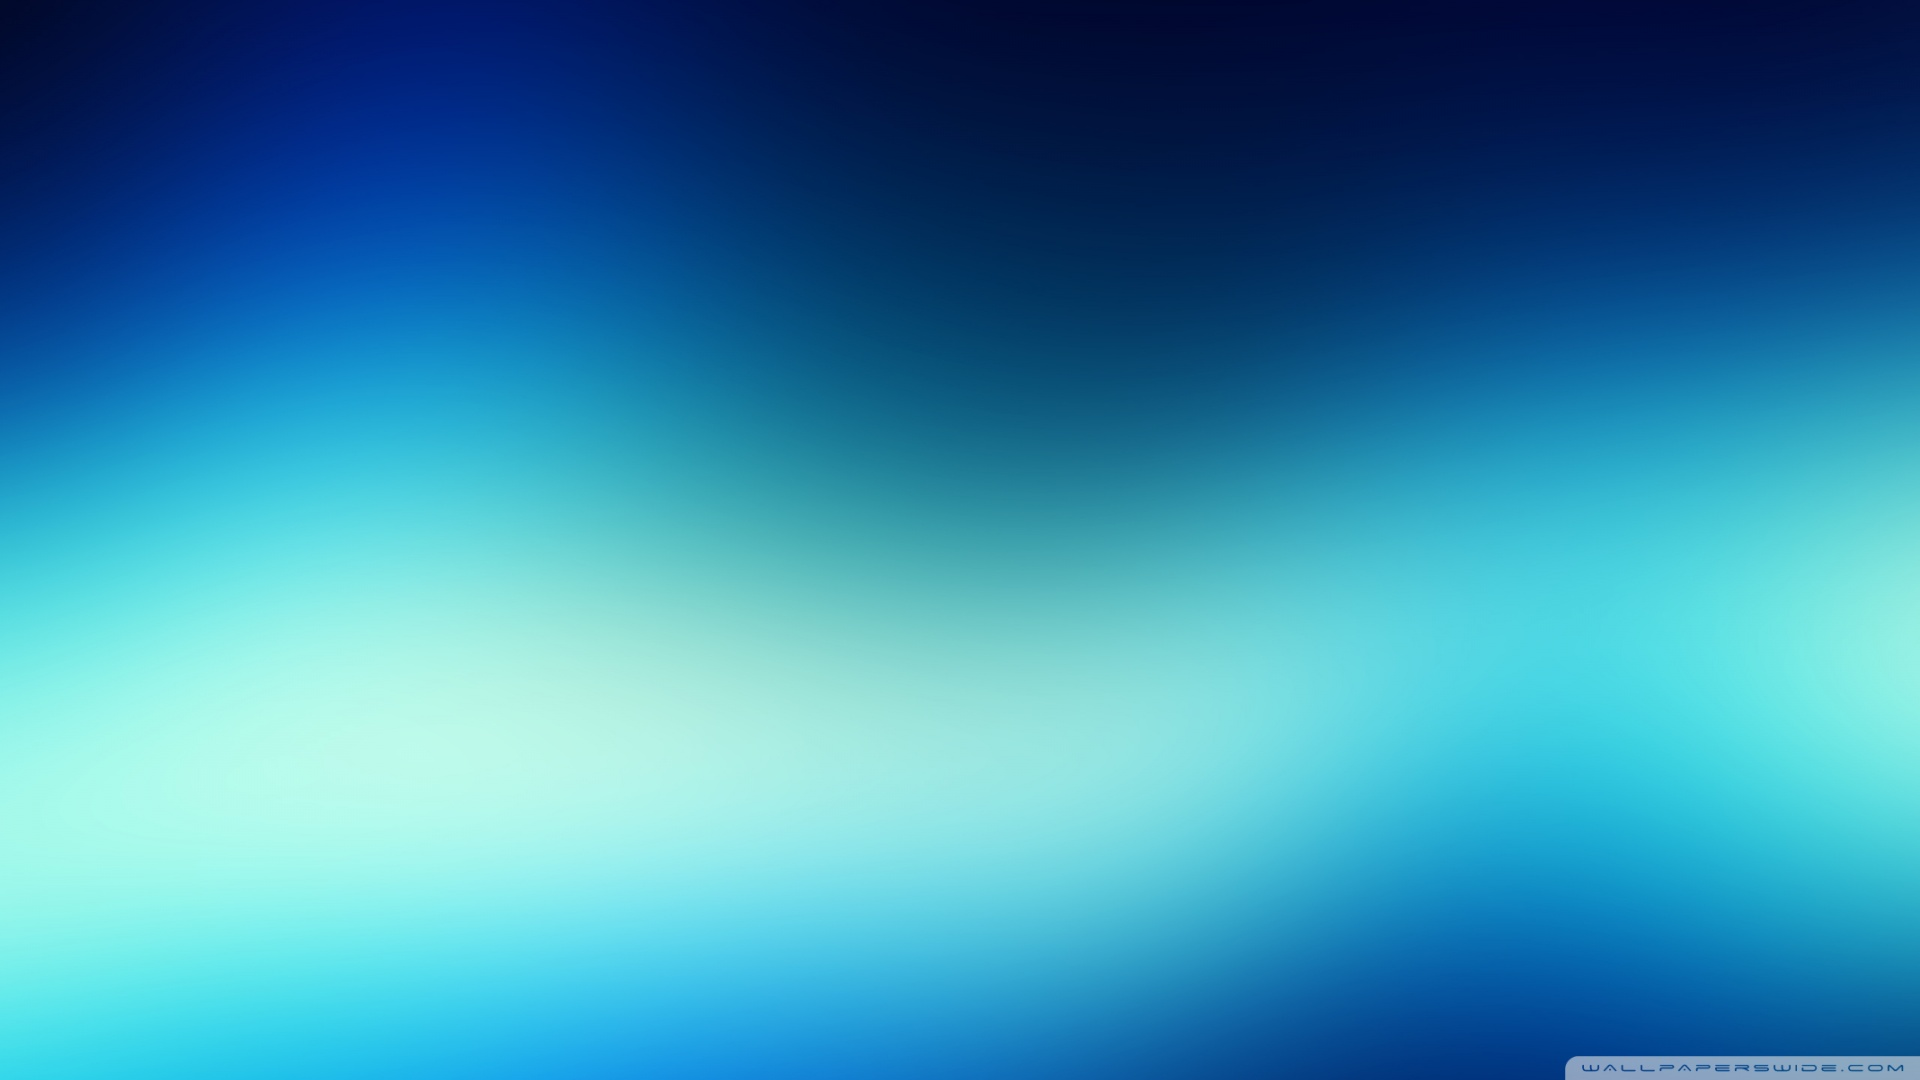 non blurry wallpapers for desktop - photo #3